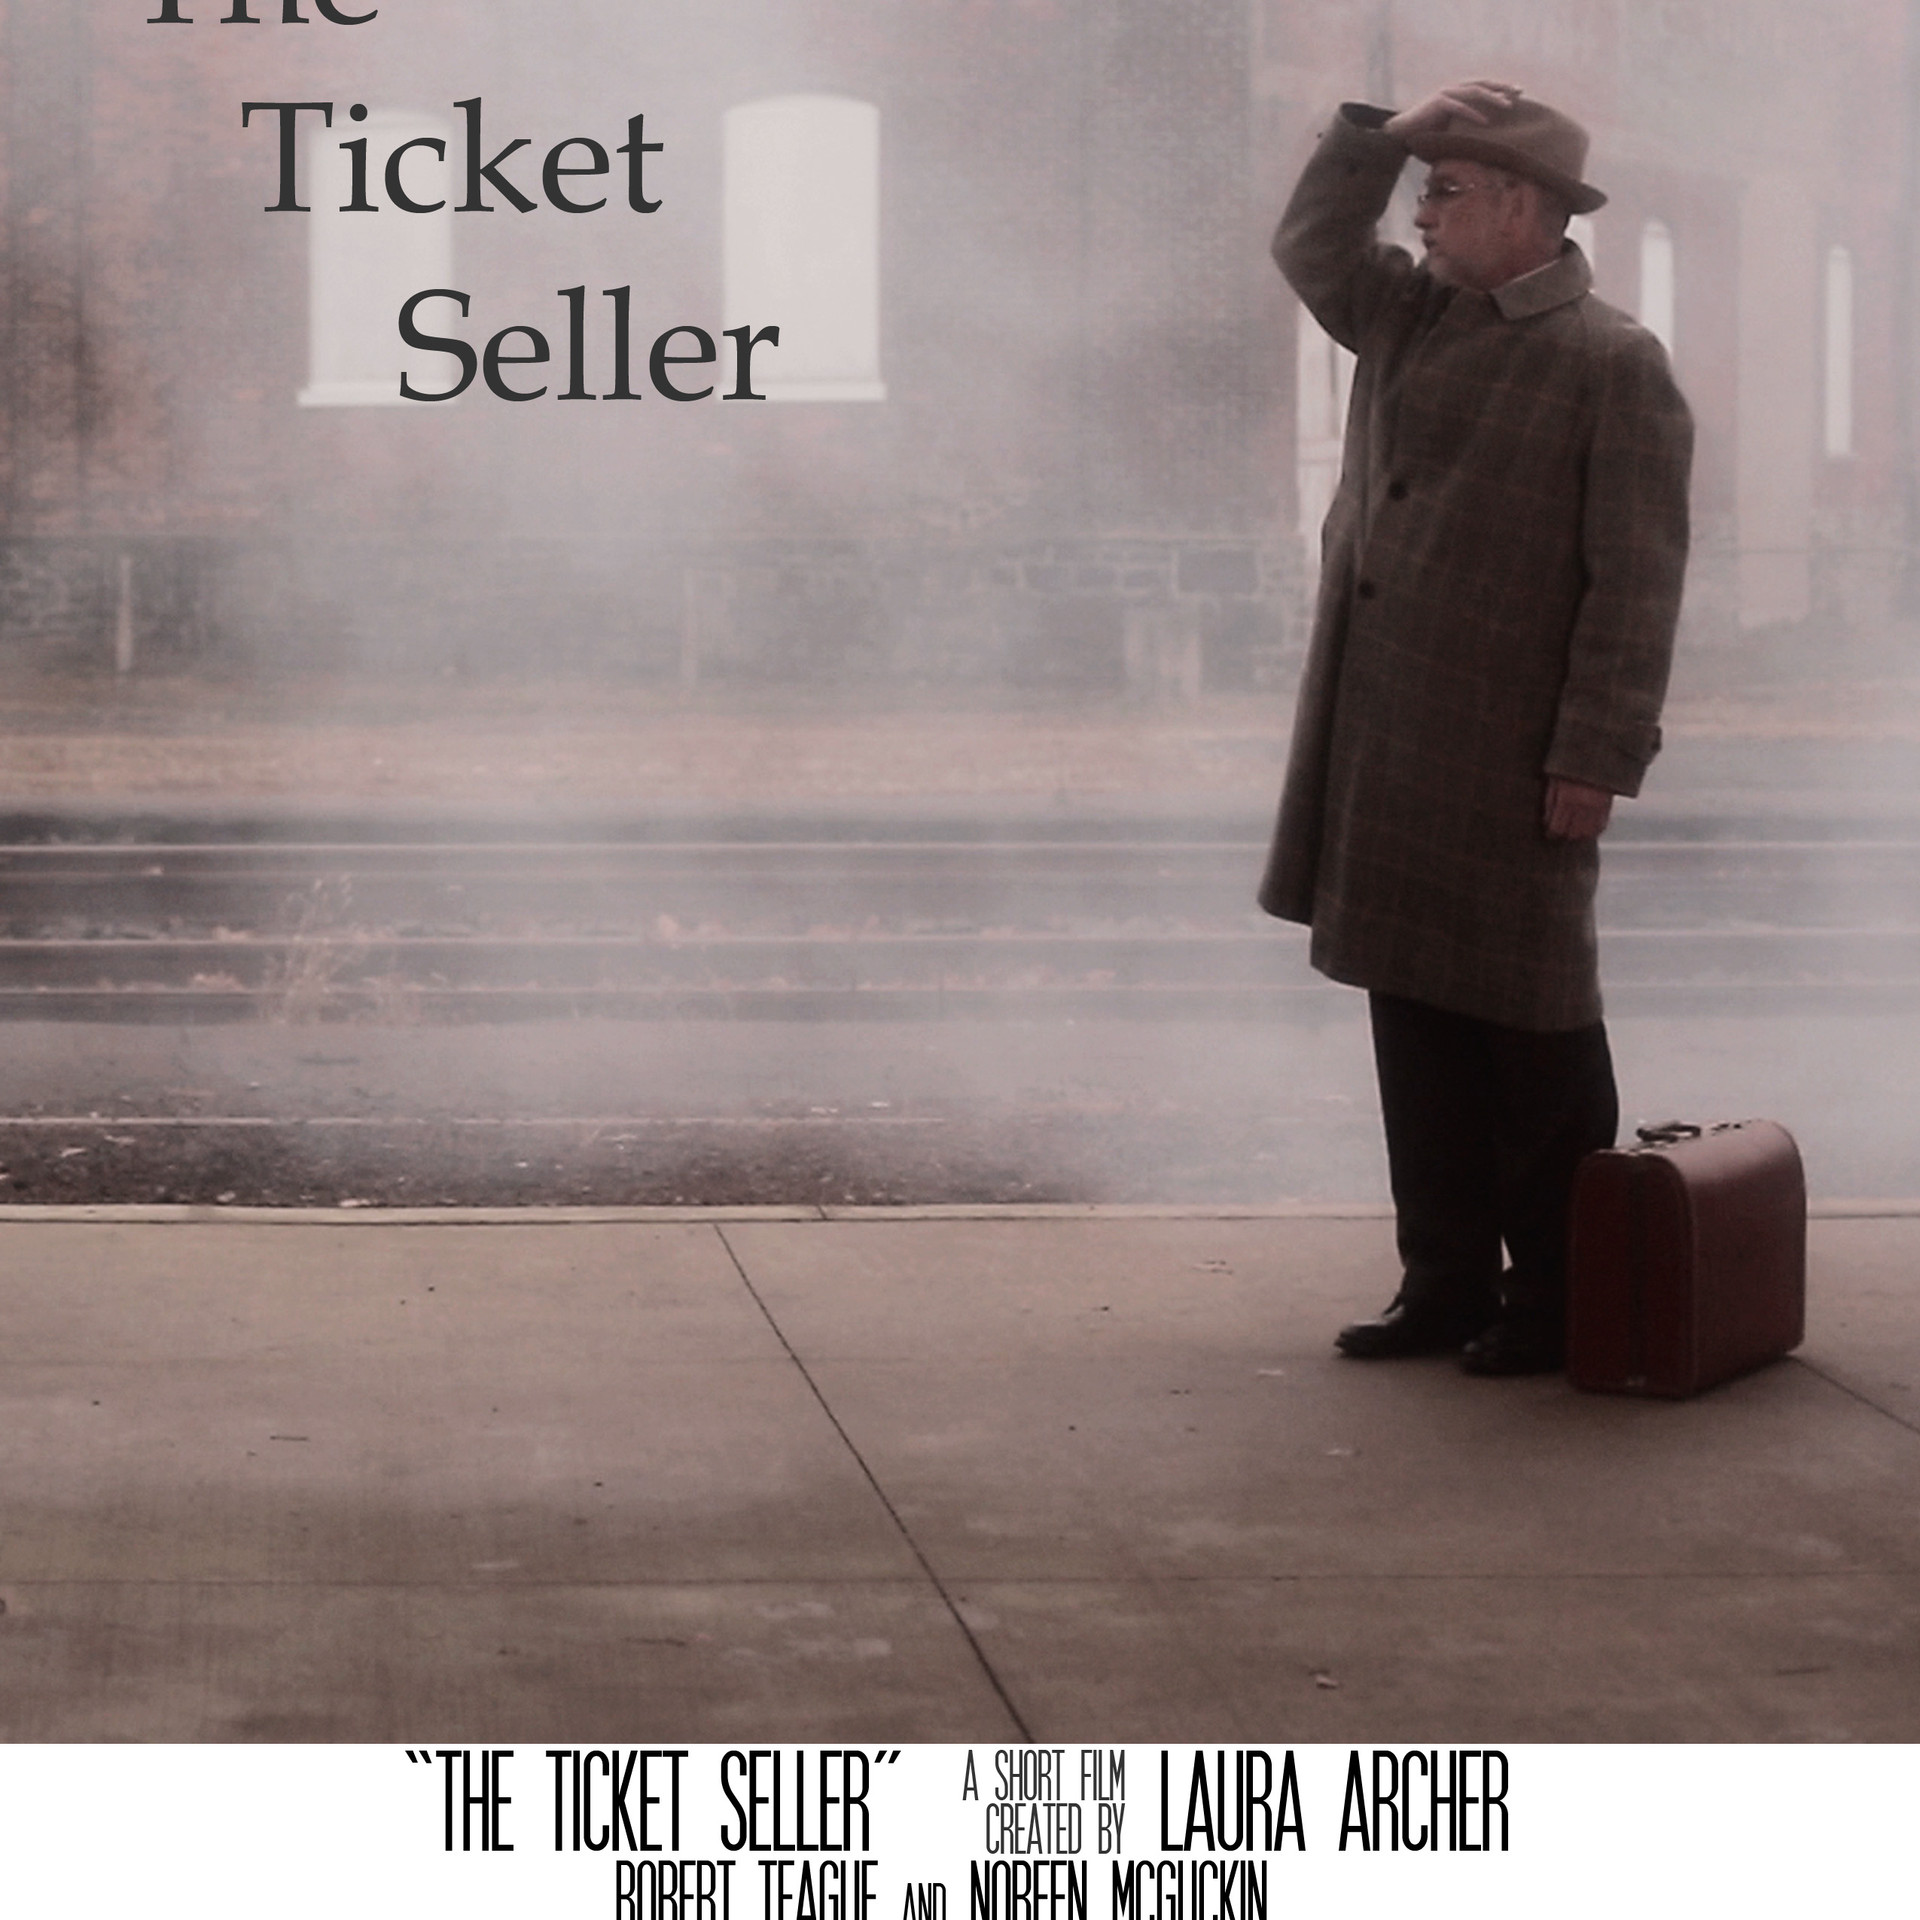 The Ticket Seller